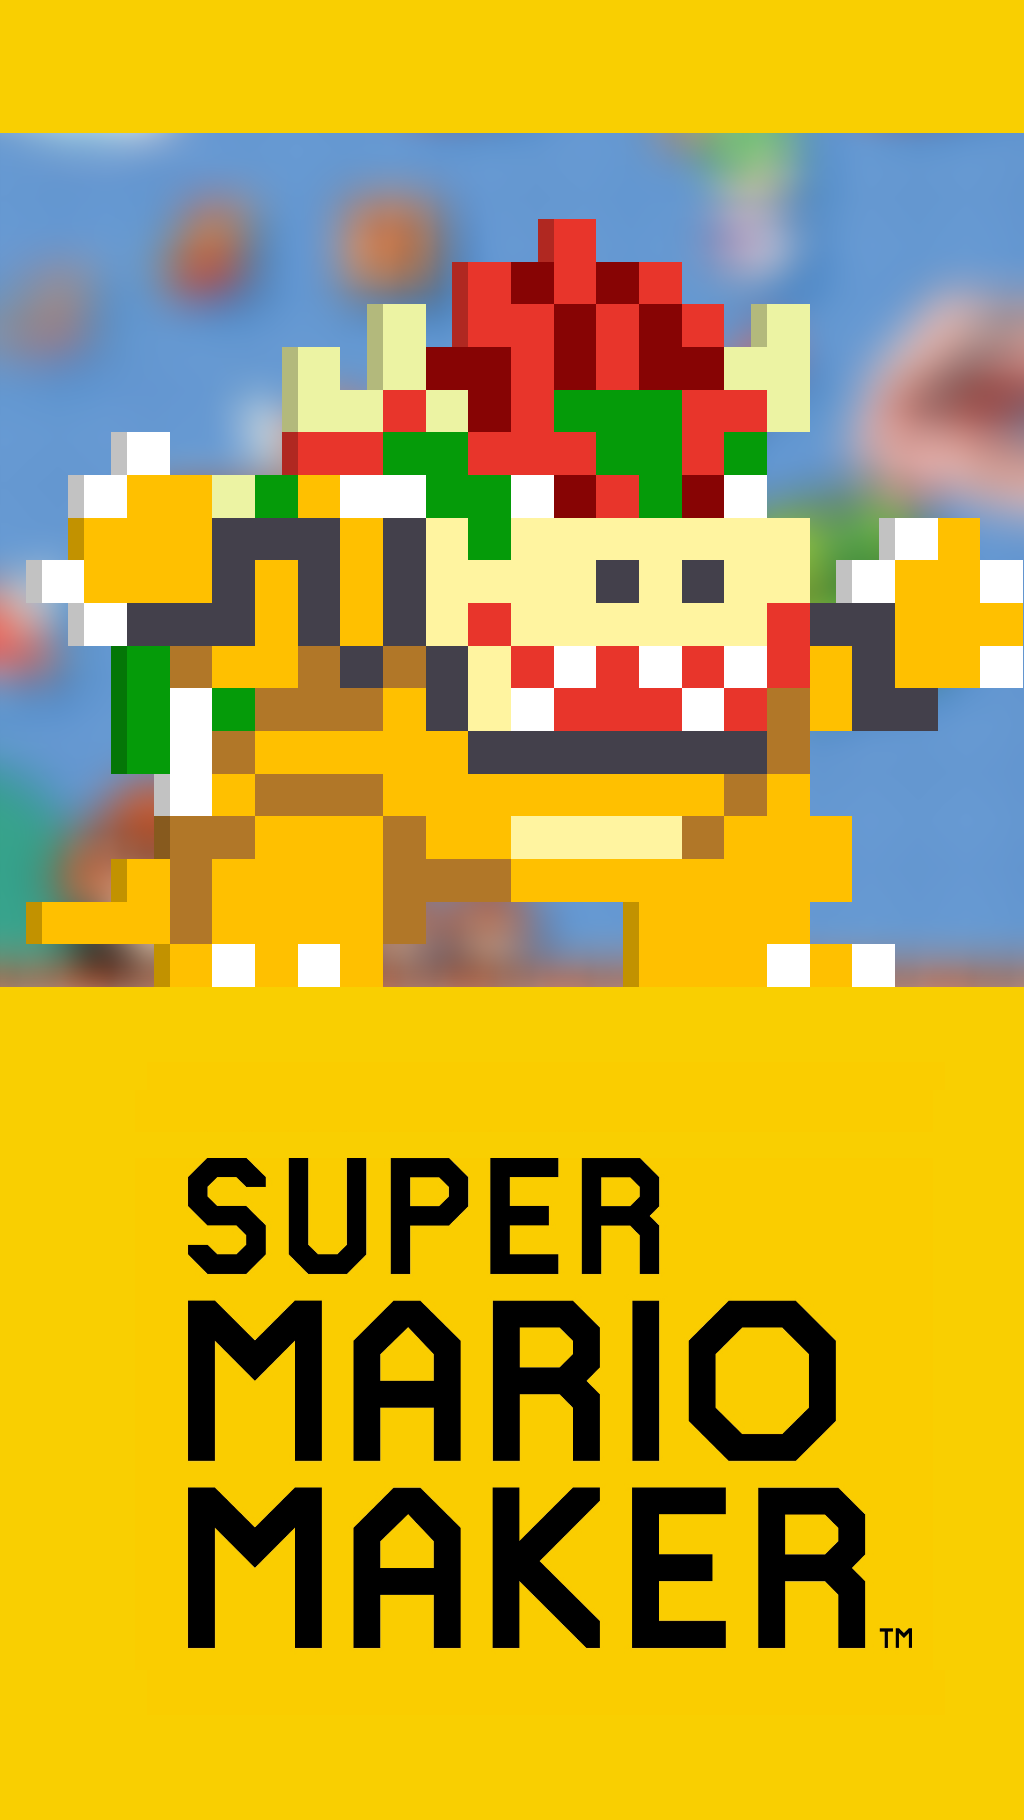 Free download Bowser Super Mario Maker Wallpaper Phone by